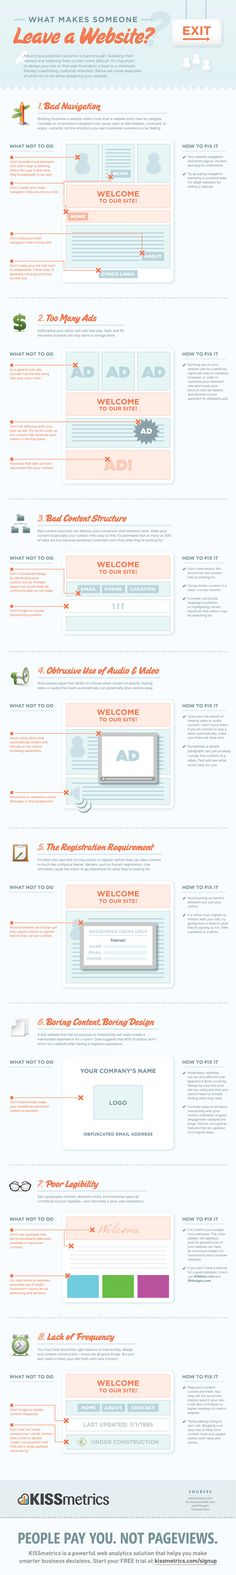 What Makes Someone Leave A Website? - #infographic / Digital Information World